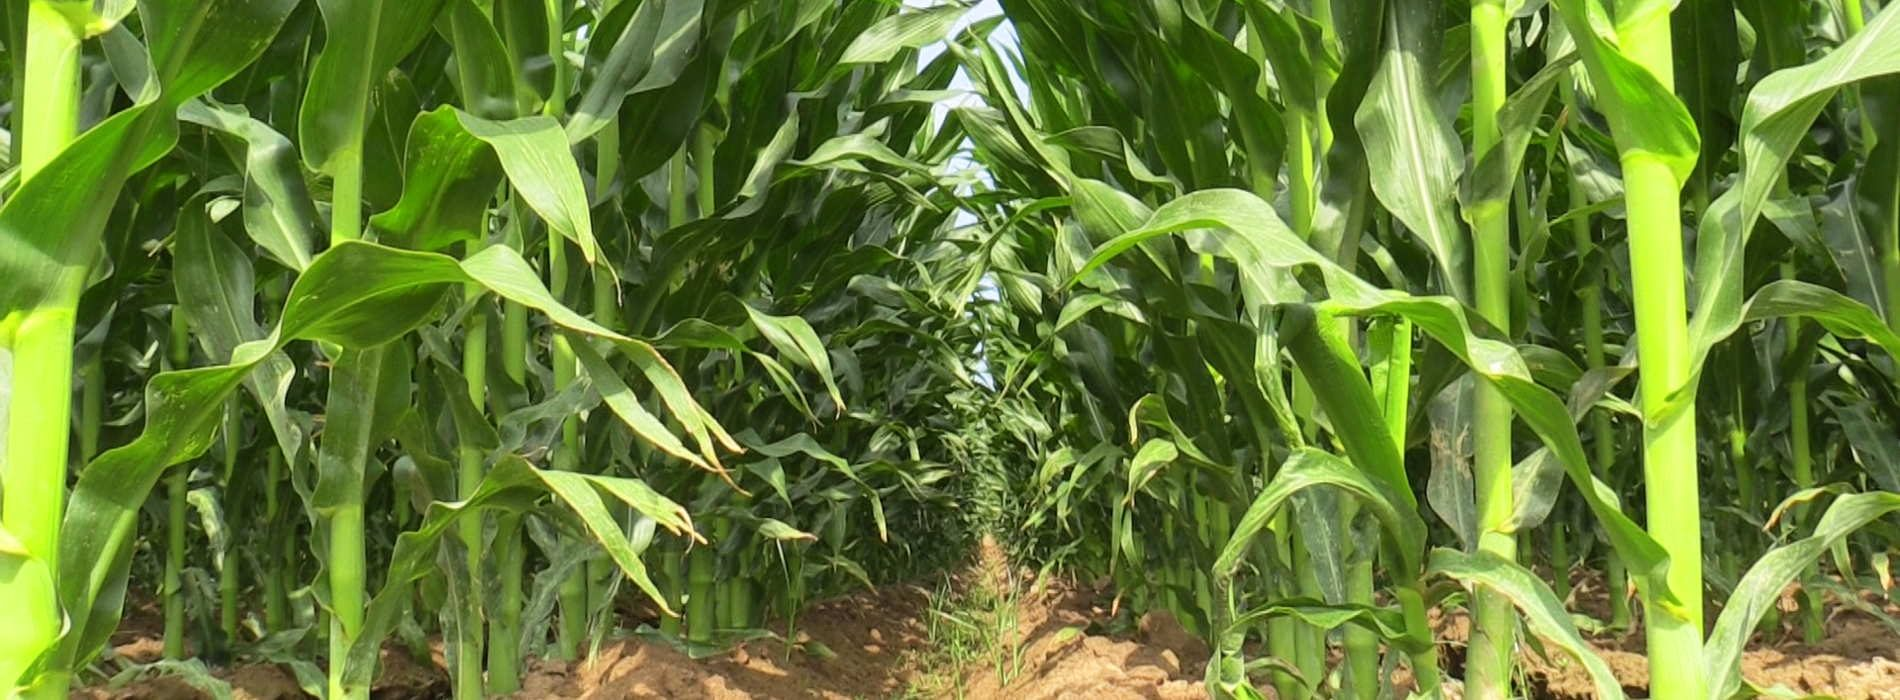 SA farmers plan to raise maize farmland by 26.5%